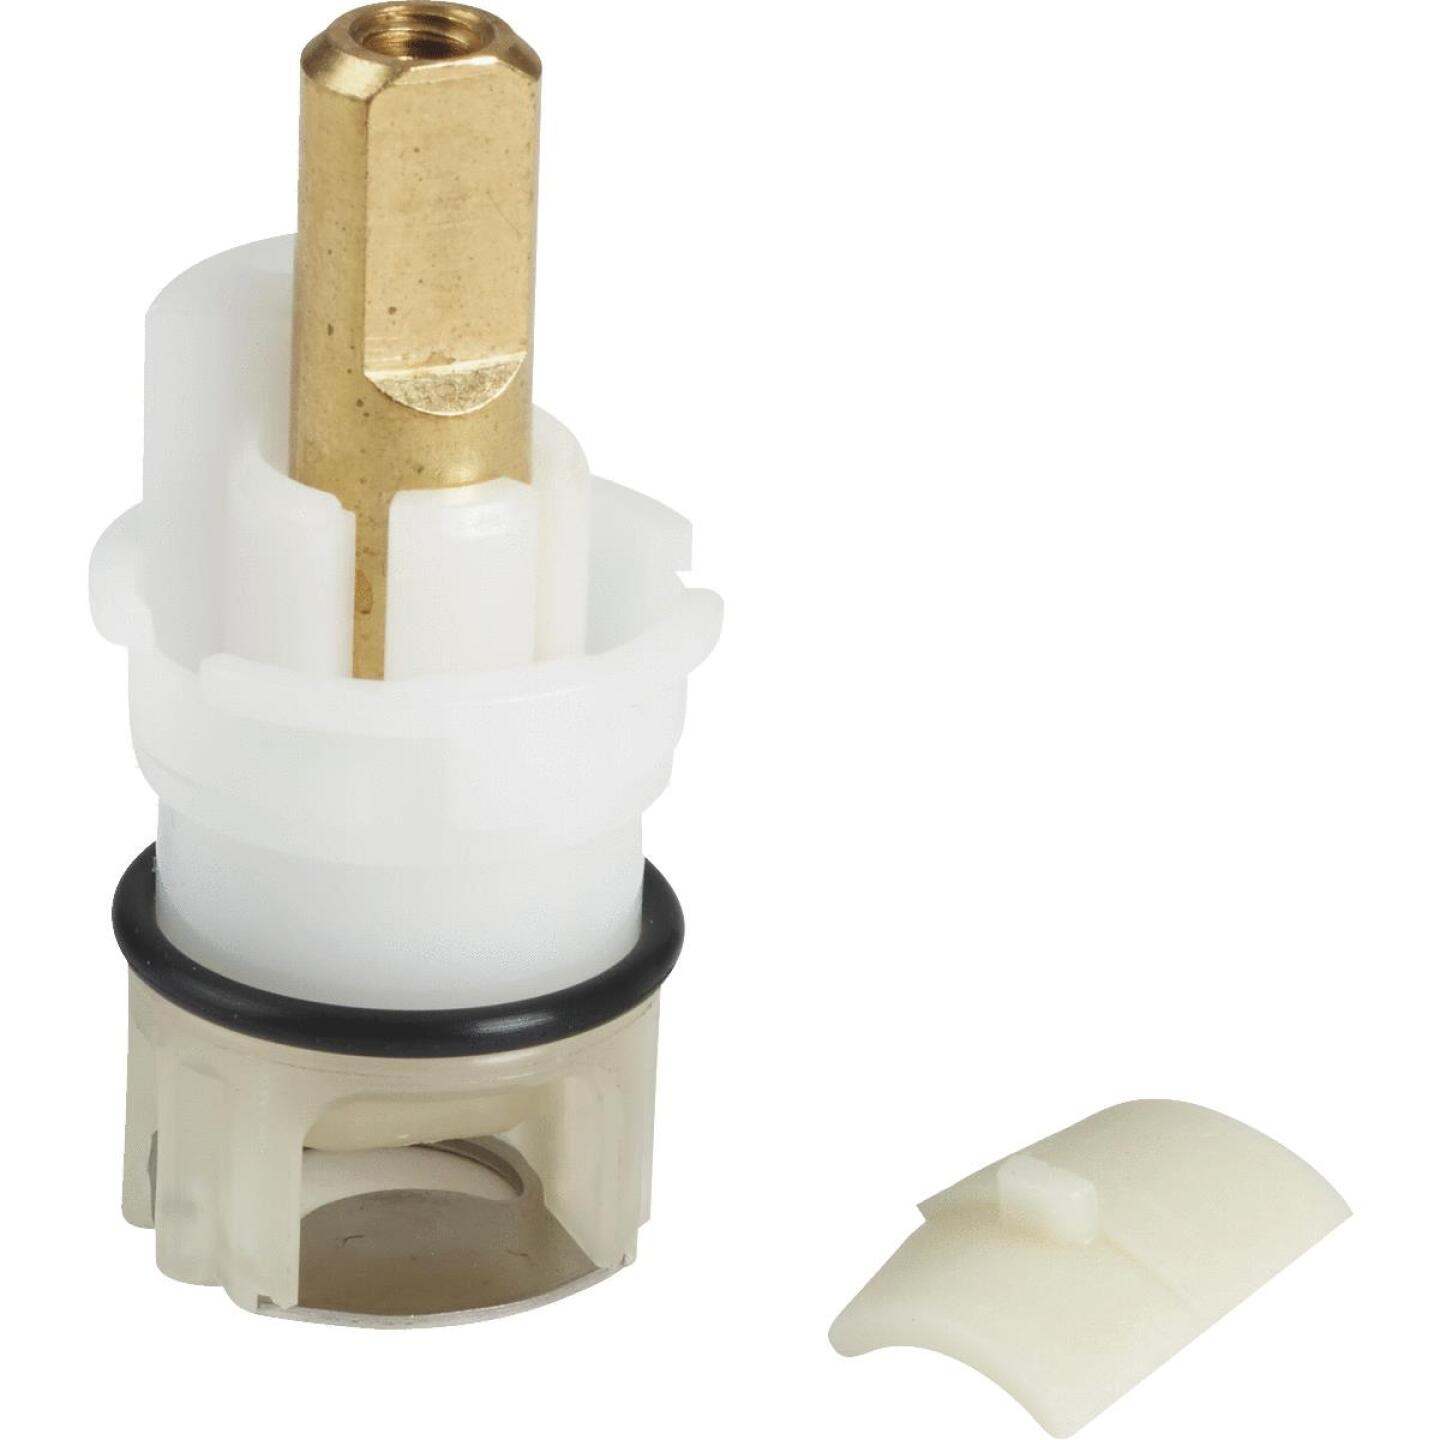 Delta Stem Assembly Two-Handle Faucet Cartridge Image 1